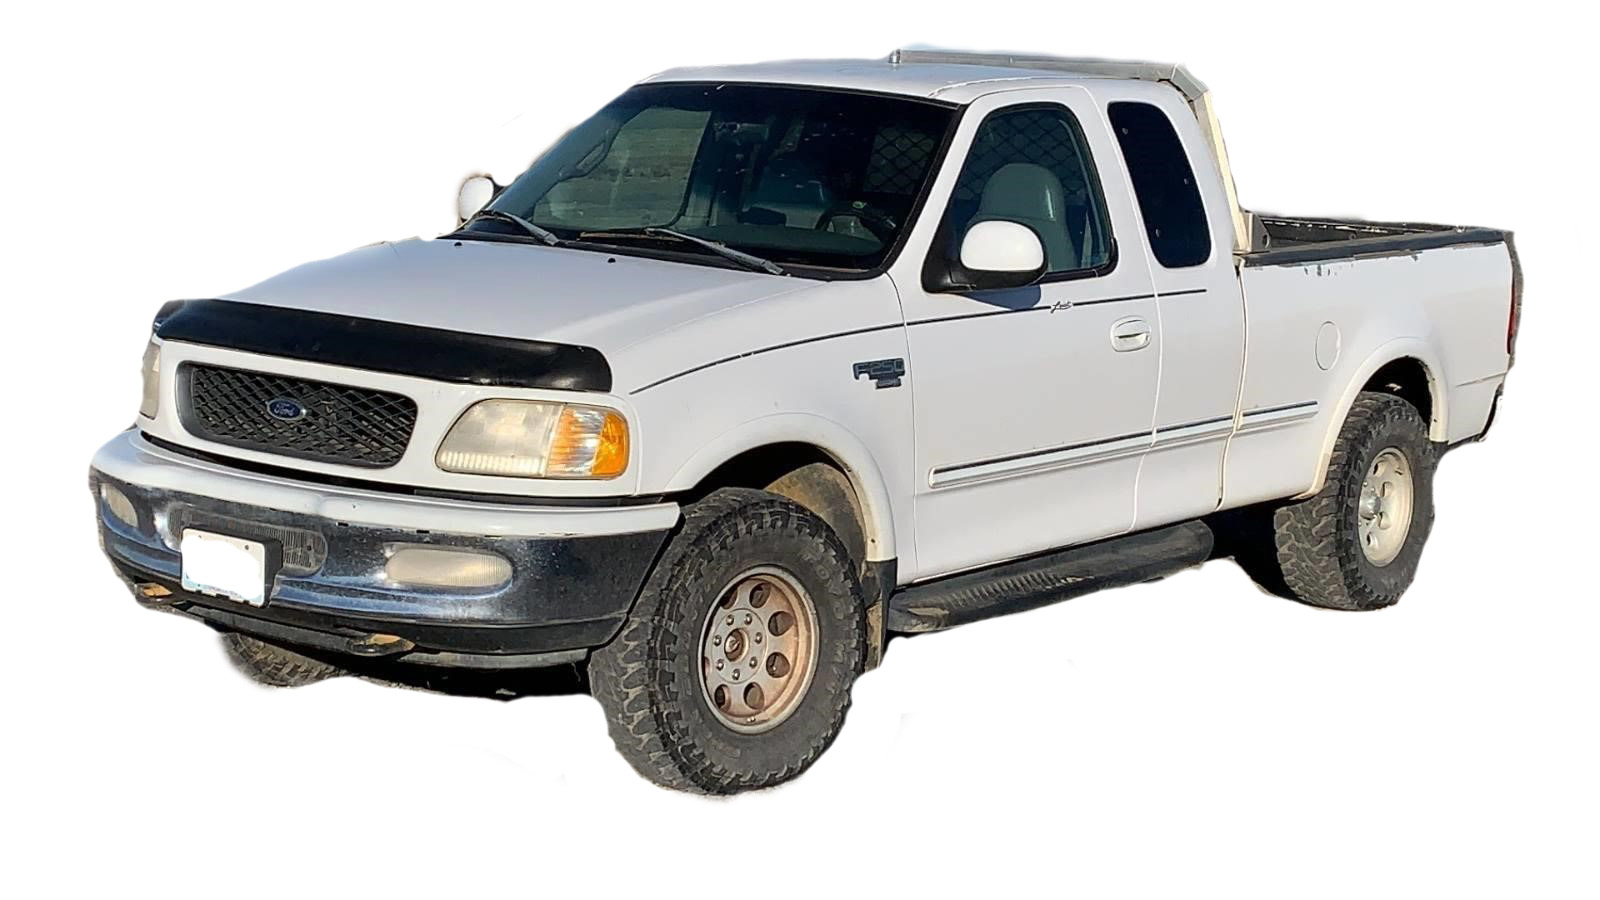 Picture of Ford F-250